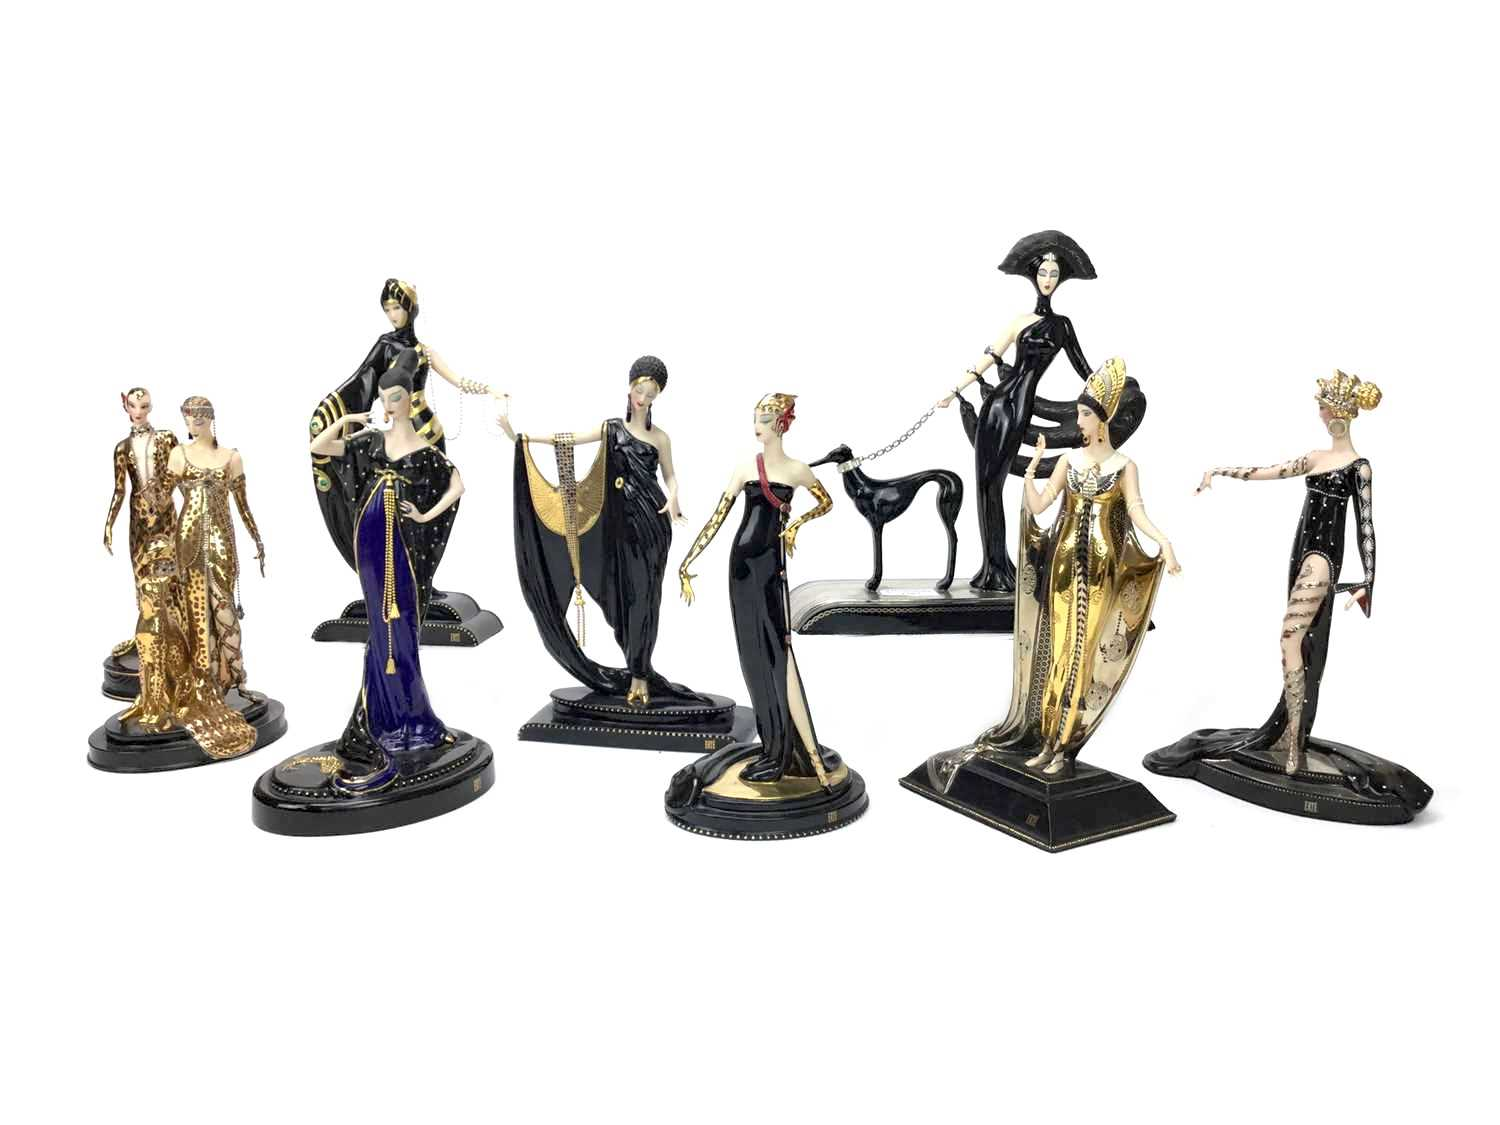 Lot 1207-A GROUP OF FRANKLIN MINT CERAMIC FIGURES OF LADIES